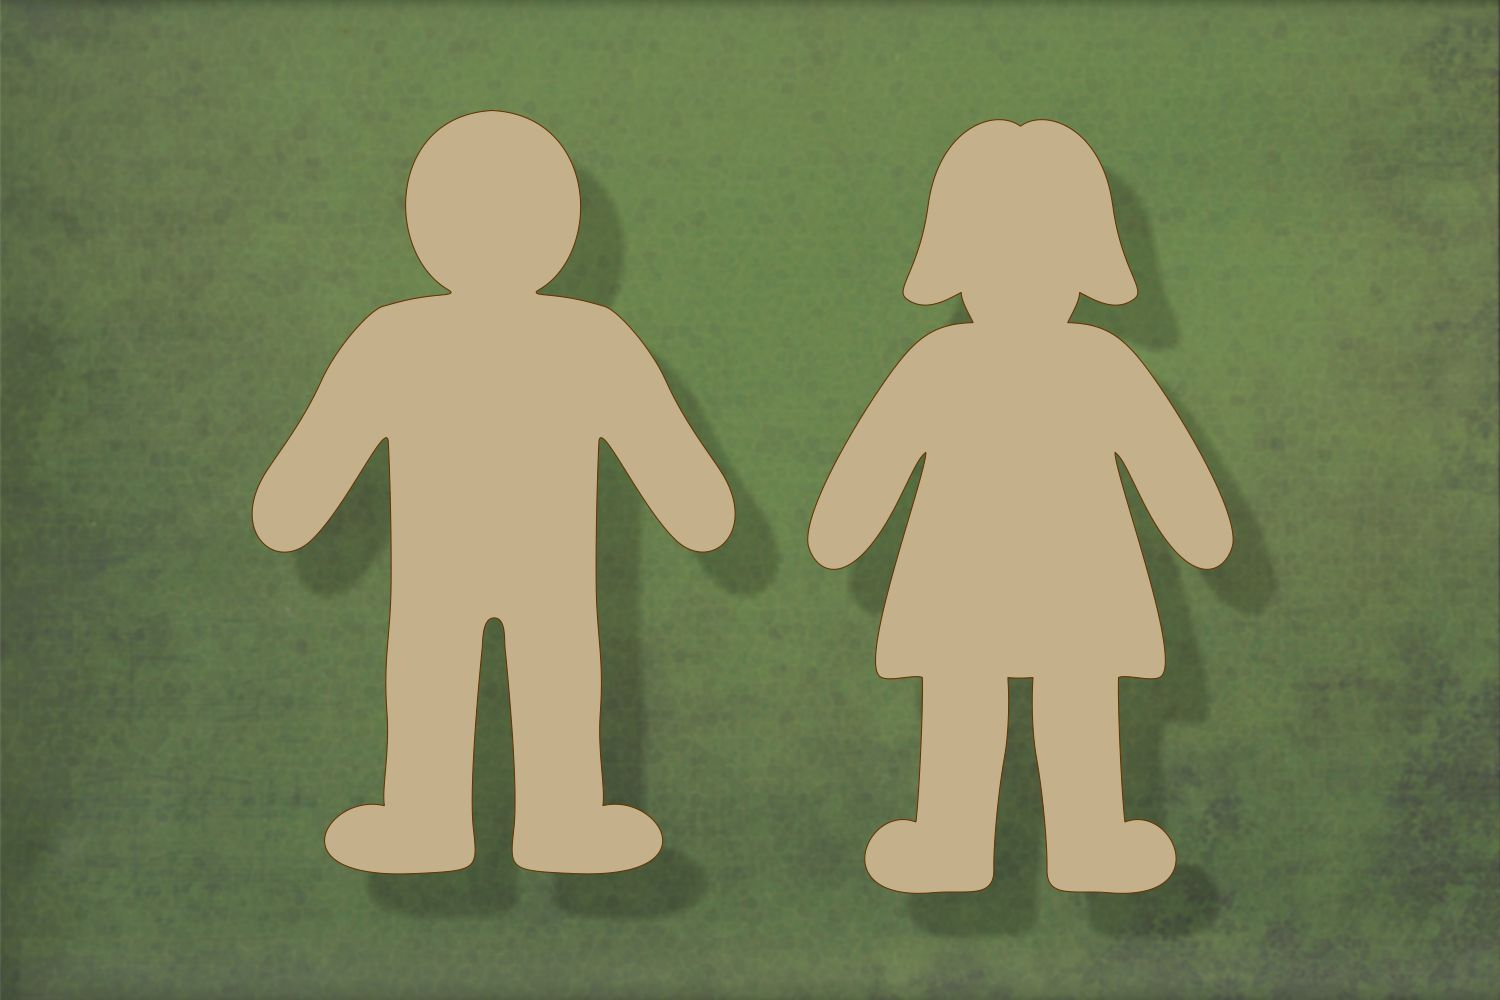 Laser cut, blank wooden People mk2 pair shape for craft